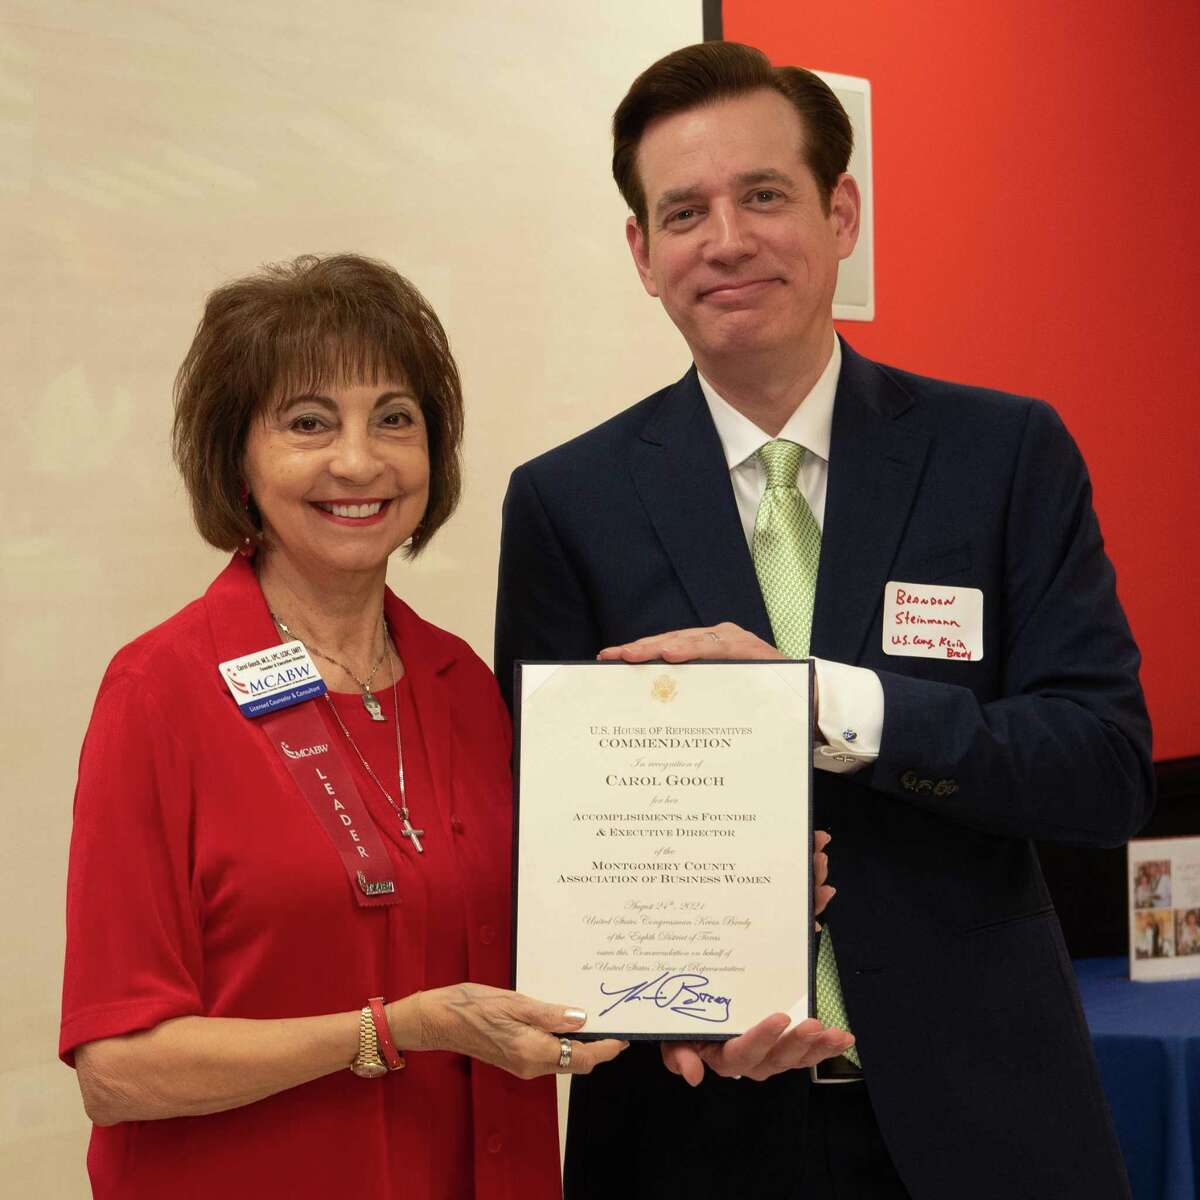 On Tuesday, the Montgomery County Association of Business Women celebrated their 16th birthday at Incredible Pizza in Conroe. Founder Carol Gooch is pictured with Brandon Steinmann from U.S. Rep. Kevin Brady's office. Brady presented a proclamation to Gooch.